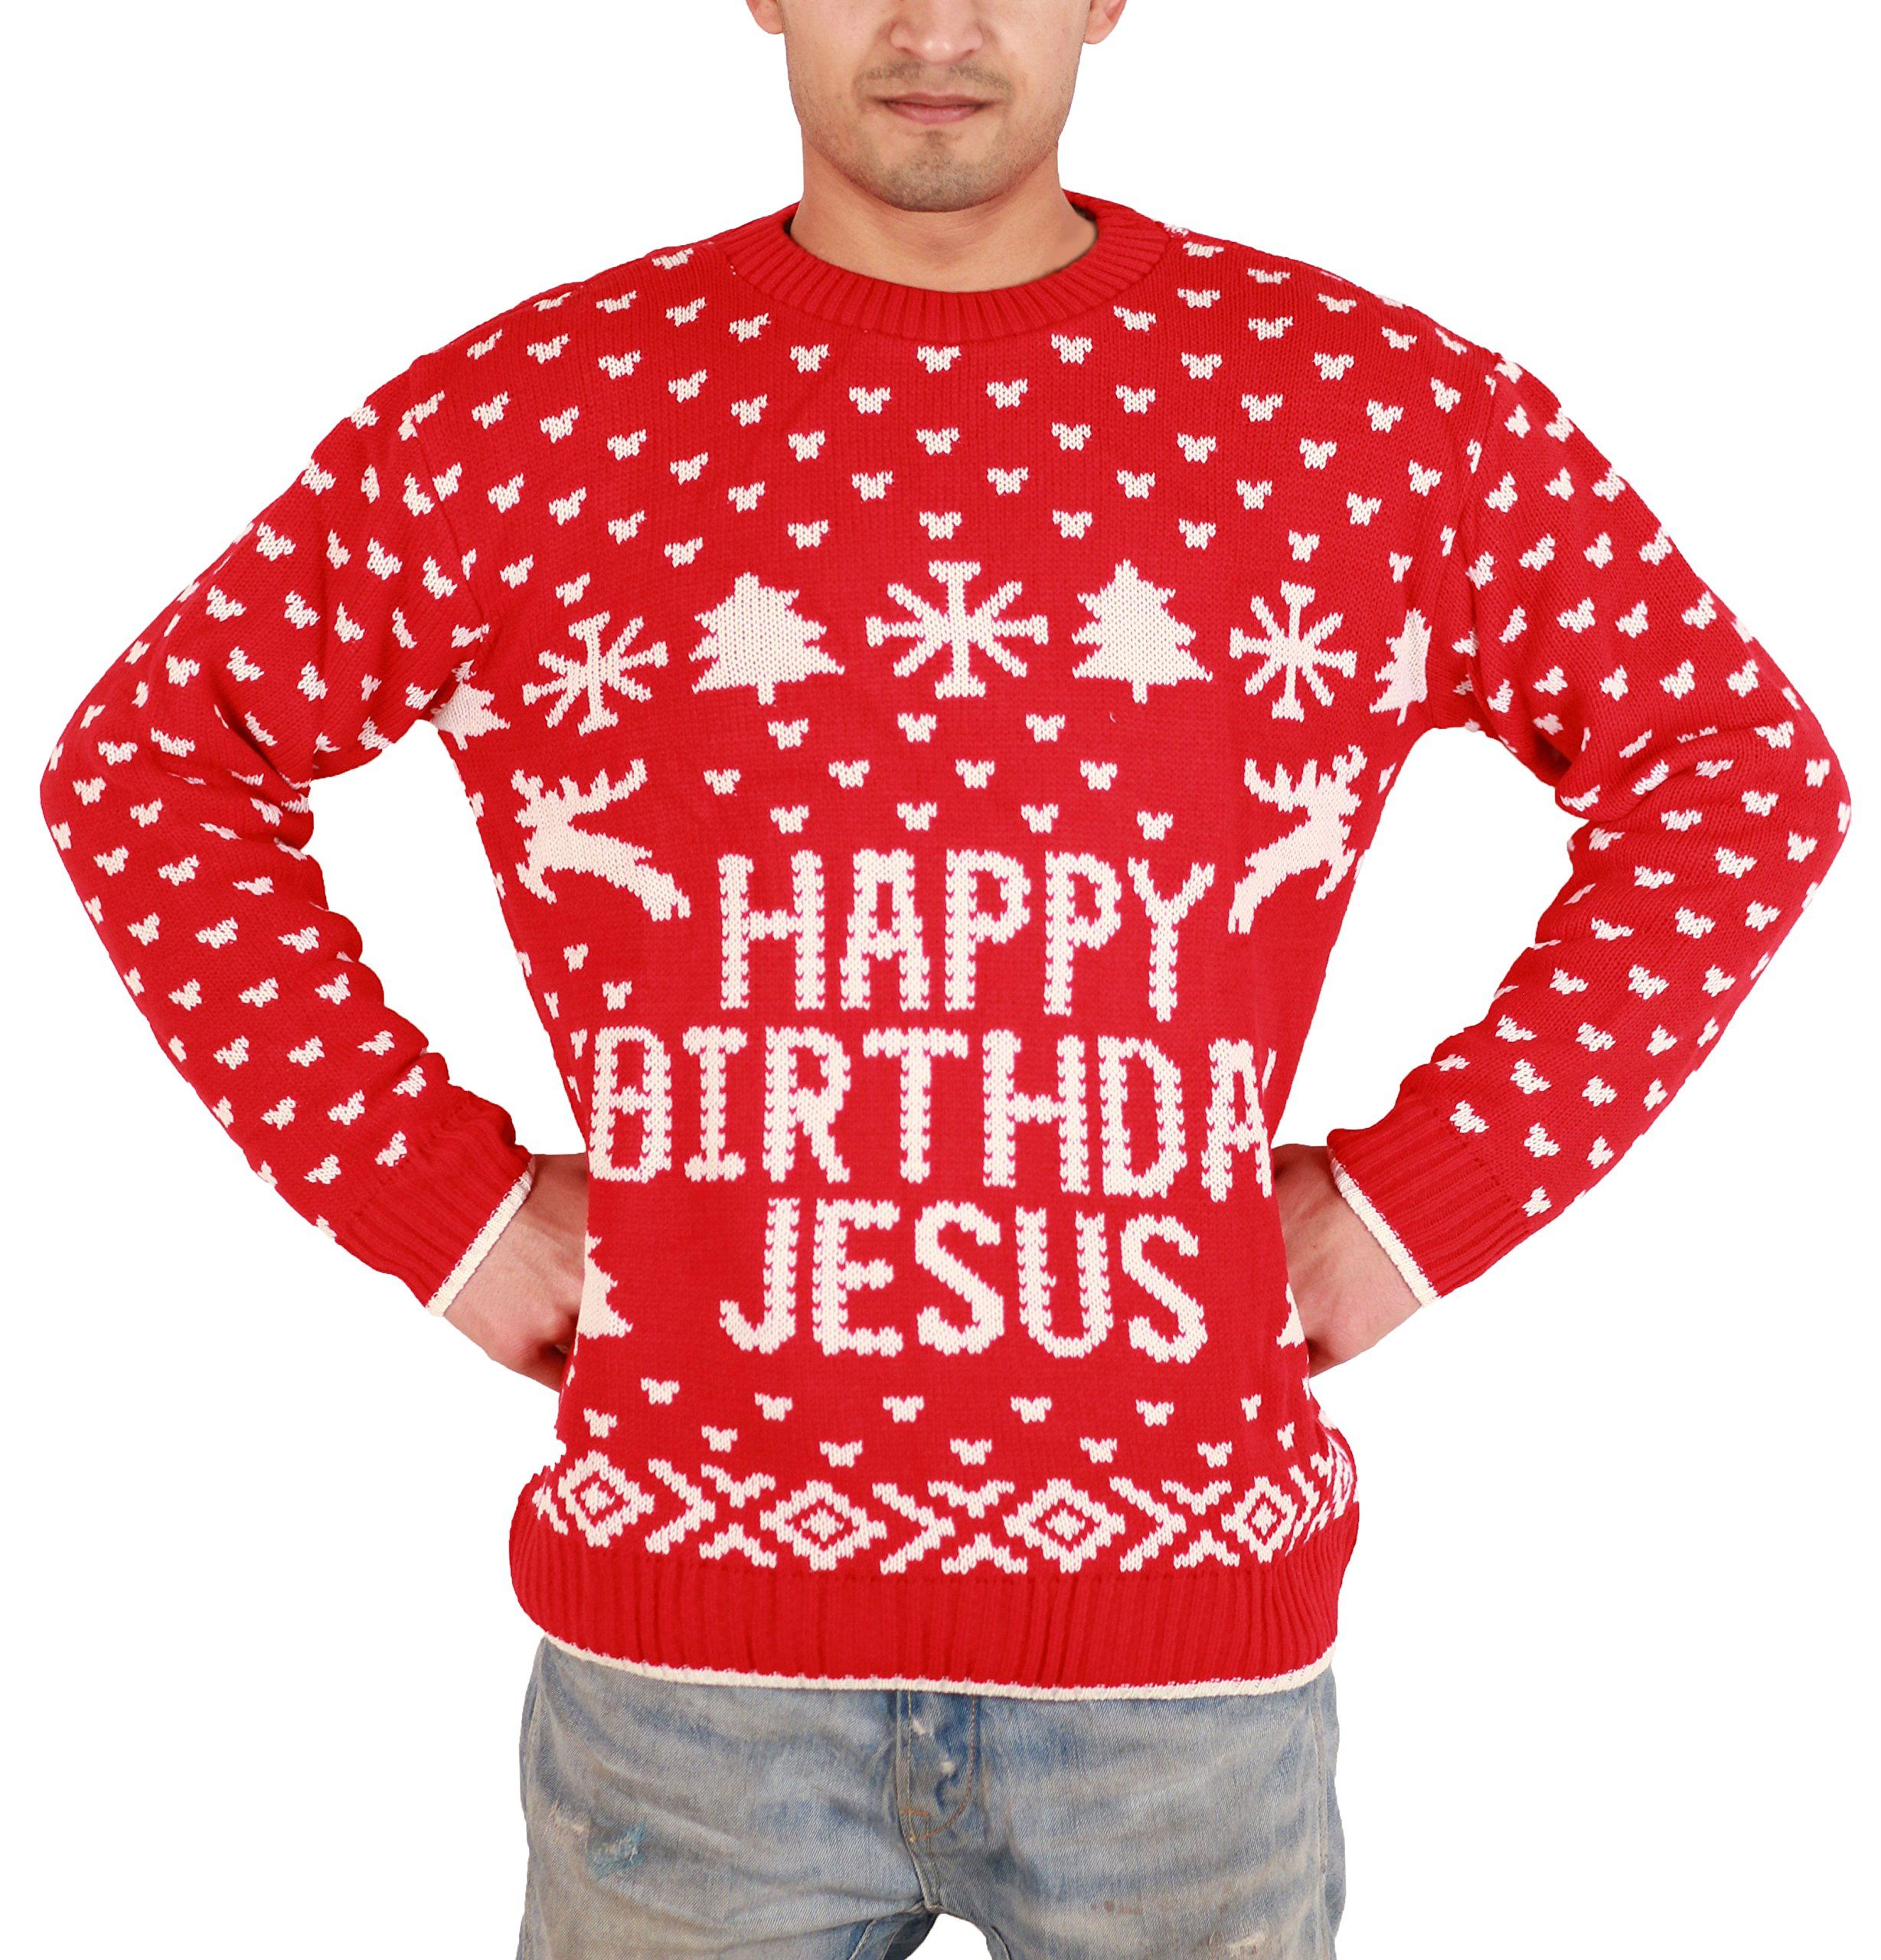 Happy Birthday Jesus Ugly Christmas Sweater /Knitted